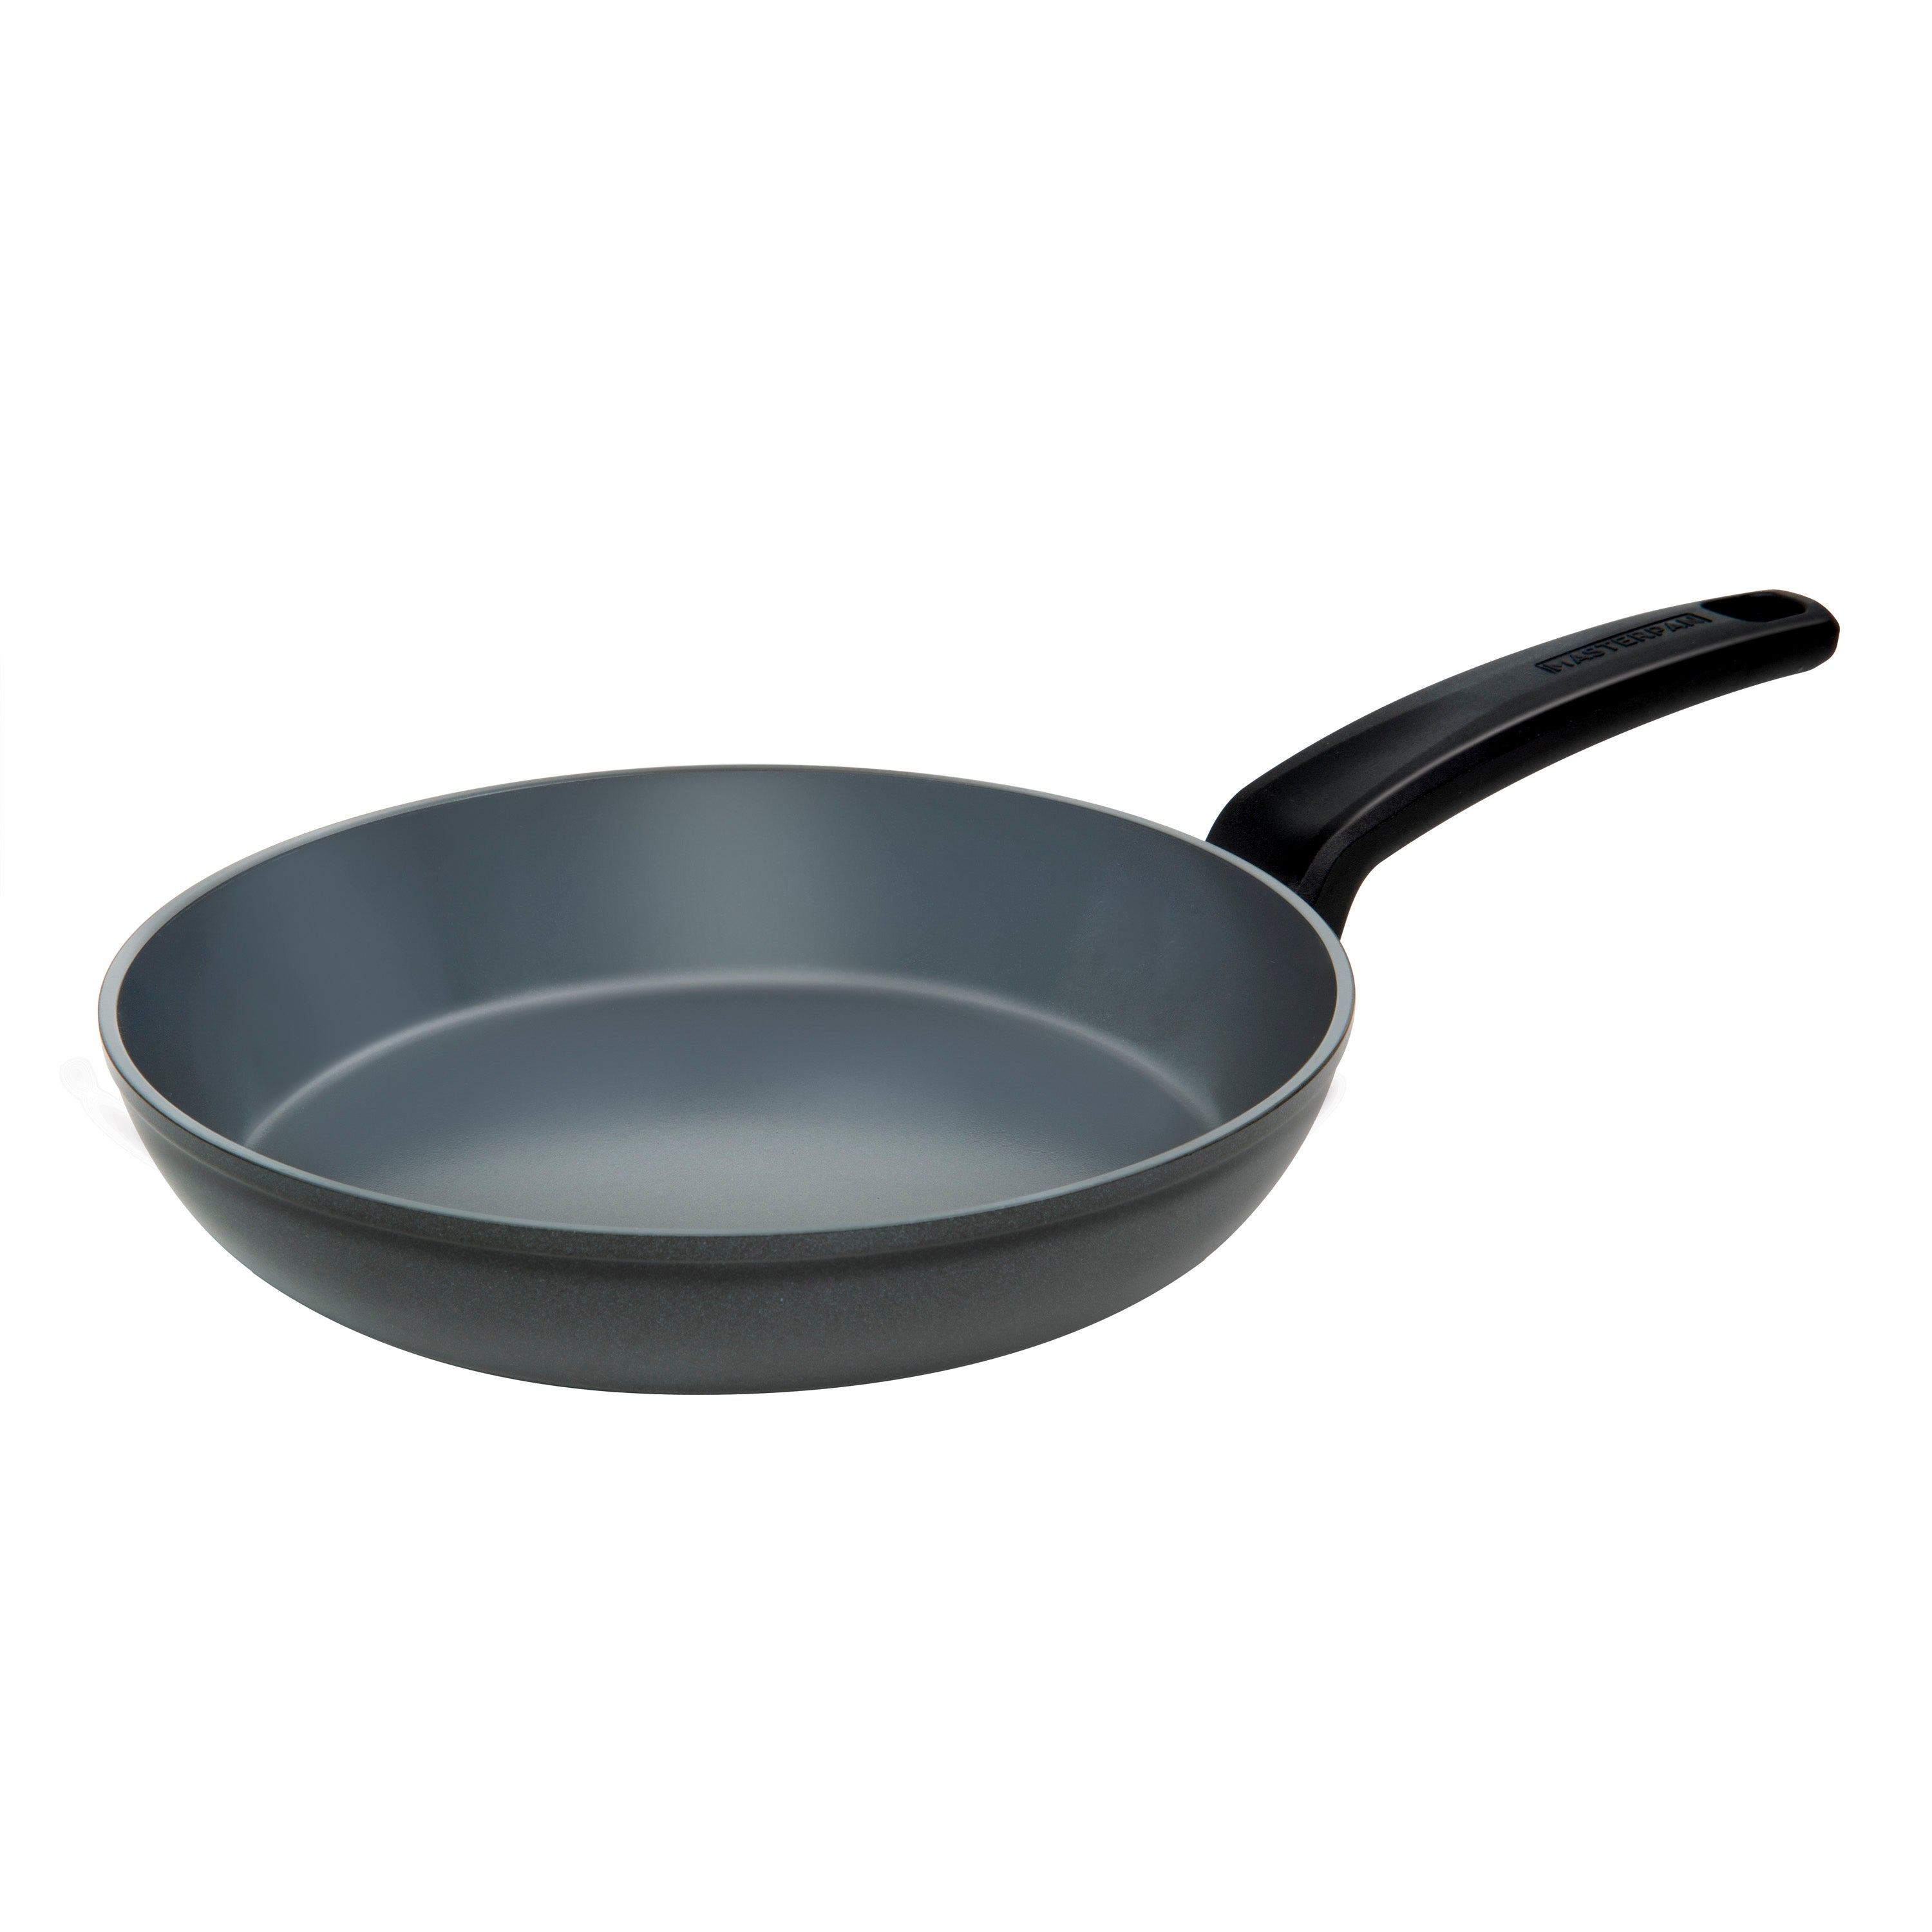 "FRY PAN & SKILLET, HEALTHY CERAMIC NON-STICK ALUMINIUM COOKWARE WITH BAKELITE HANDLE, 9.5"" (24cm)"